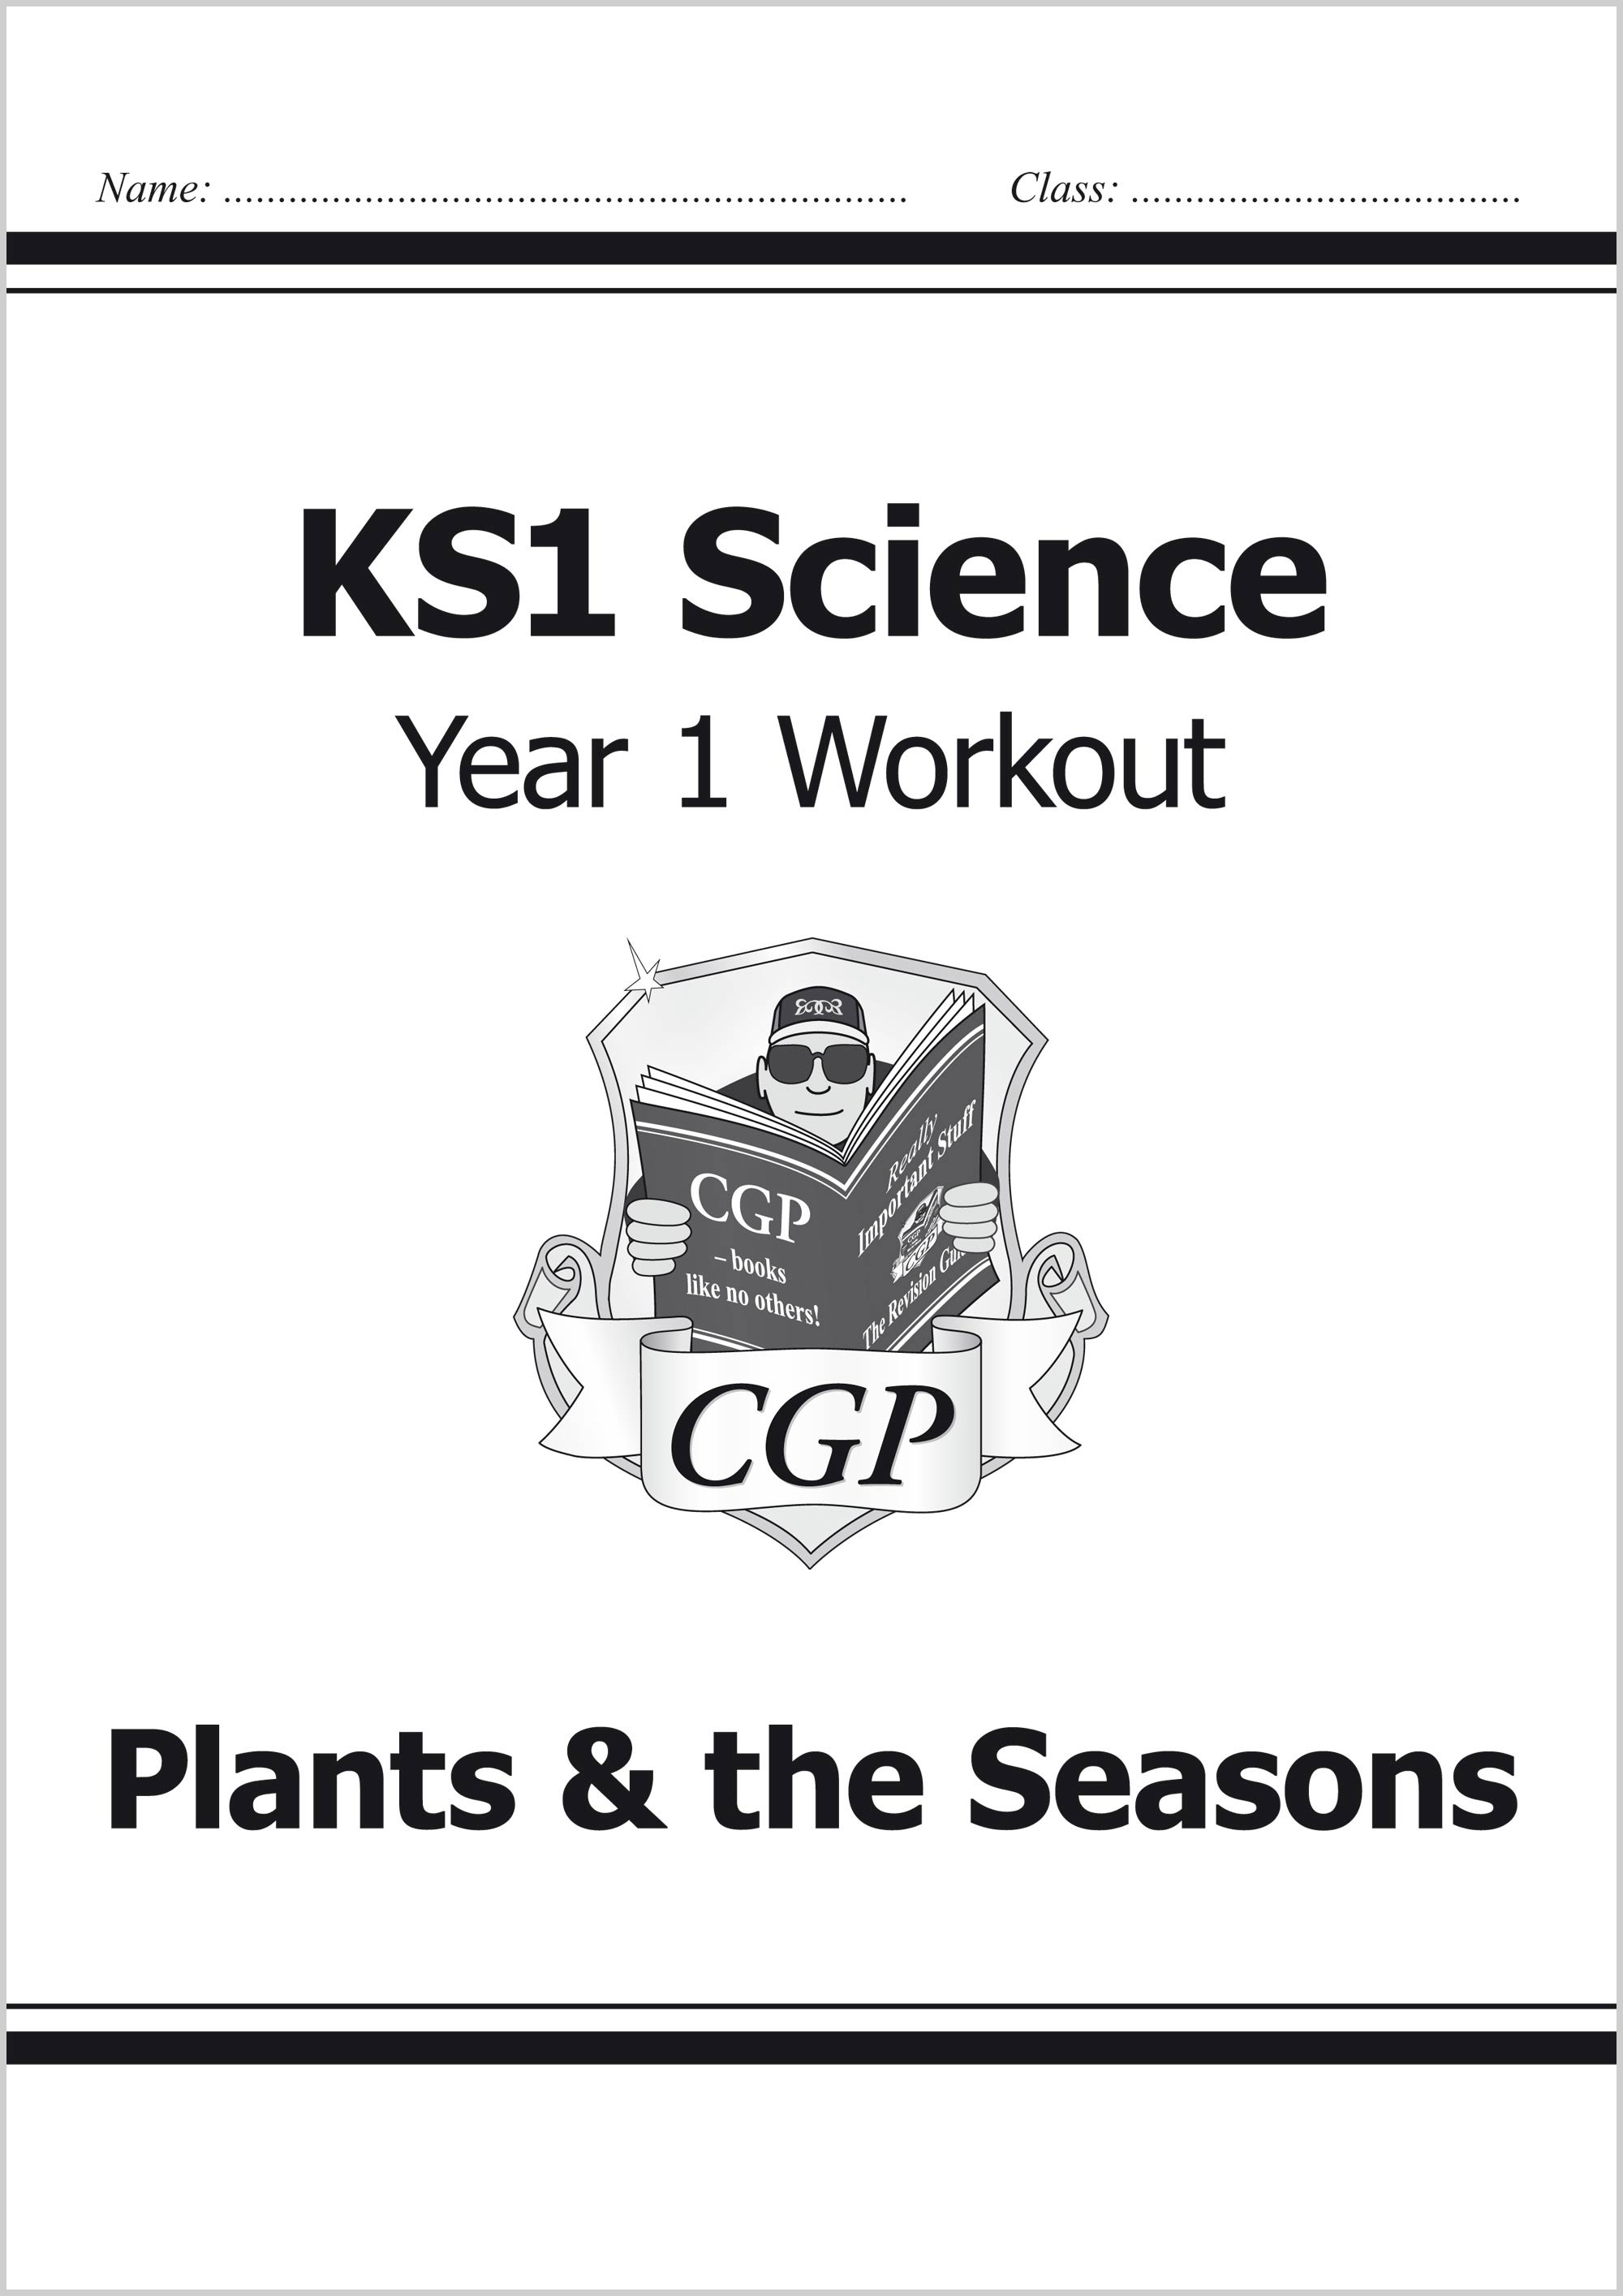 S1A11 - KS1 Science Year One Workout: Plants & the Seasons